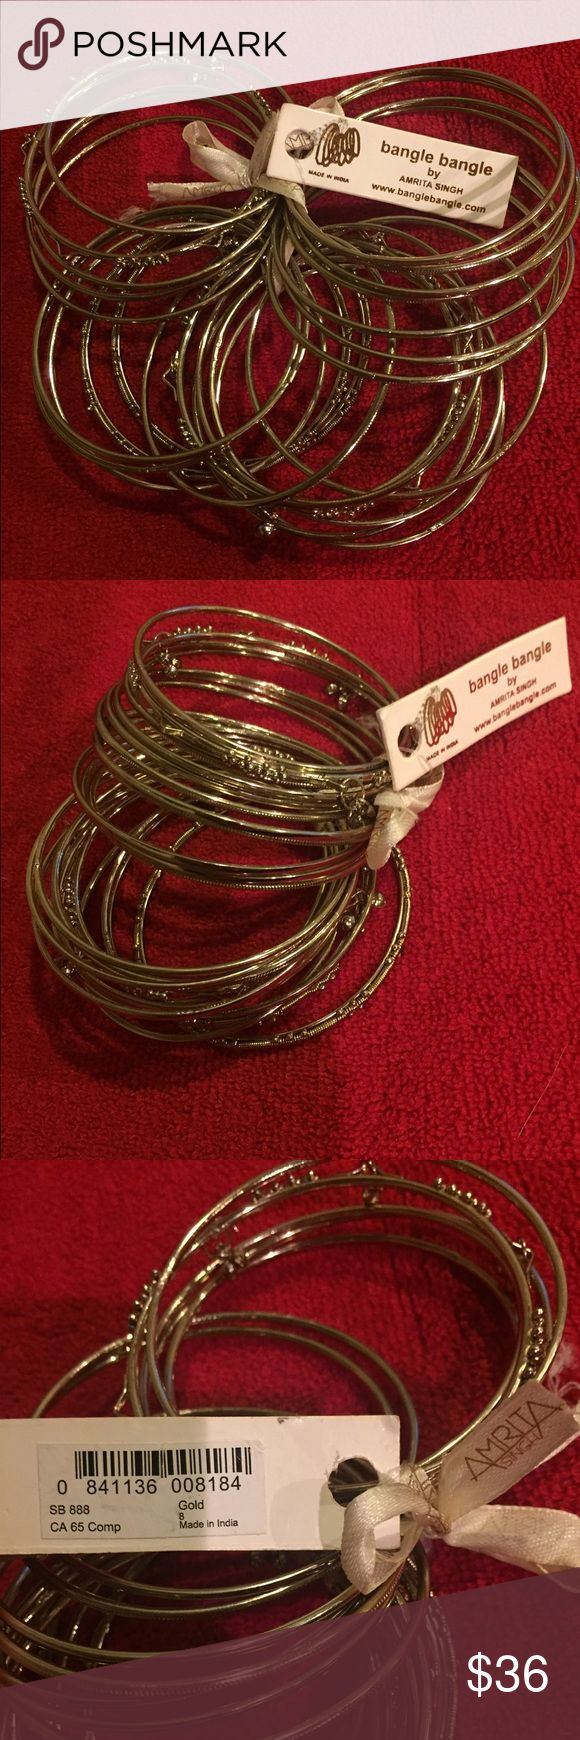 "NWT Amrita Singh ""Mumbai"" Bangle Set New with tags, never worn, Amrita Singh ""Mumbai"" bangle bracelet set - 24 pieces! Size 8, gold (though it's a nice, subdued gold - in the last photo you can see my silver ring next to the bracelets for comparison). Comes with dustbag! Currently $60 on Amrita Singh website. Amrita Singh Jewelry"